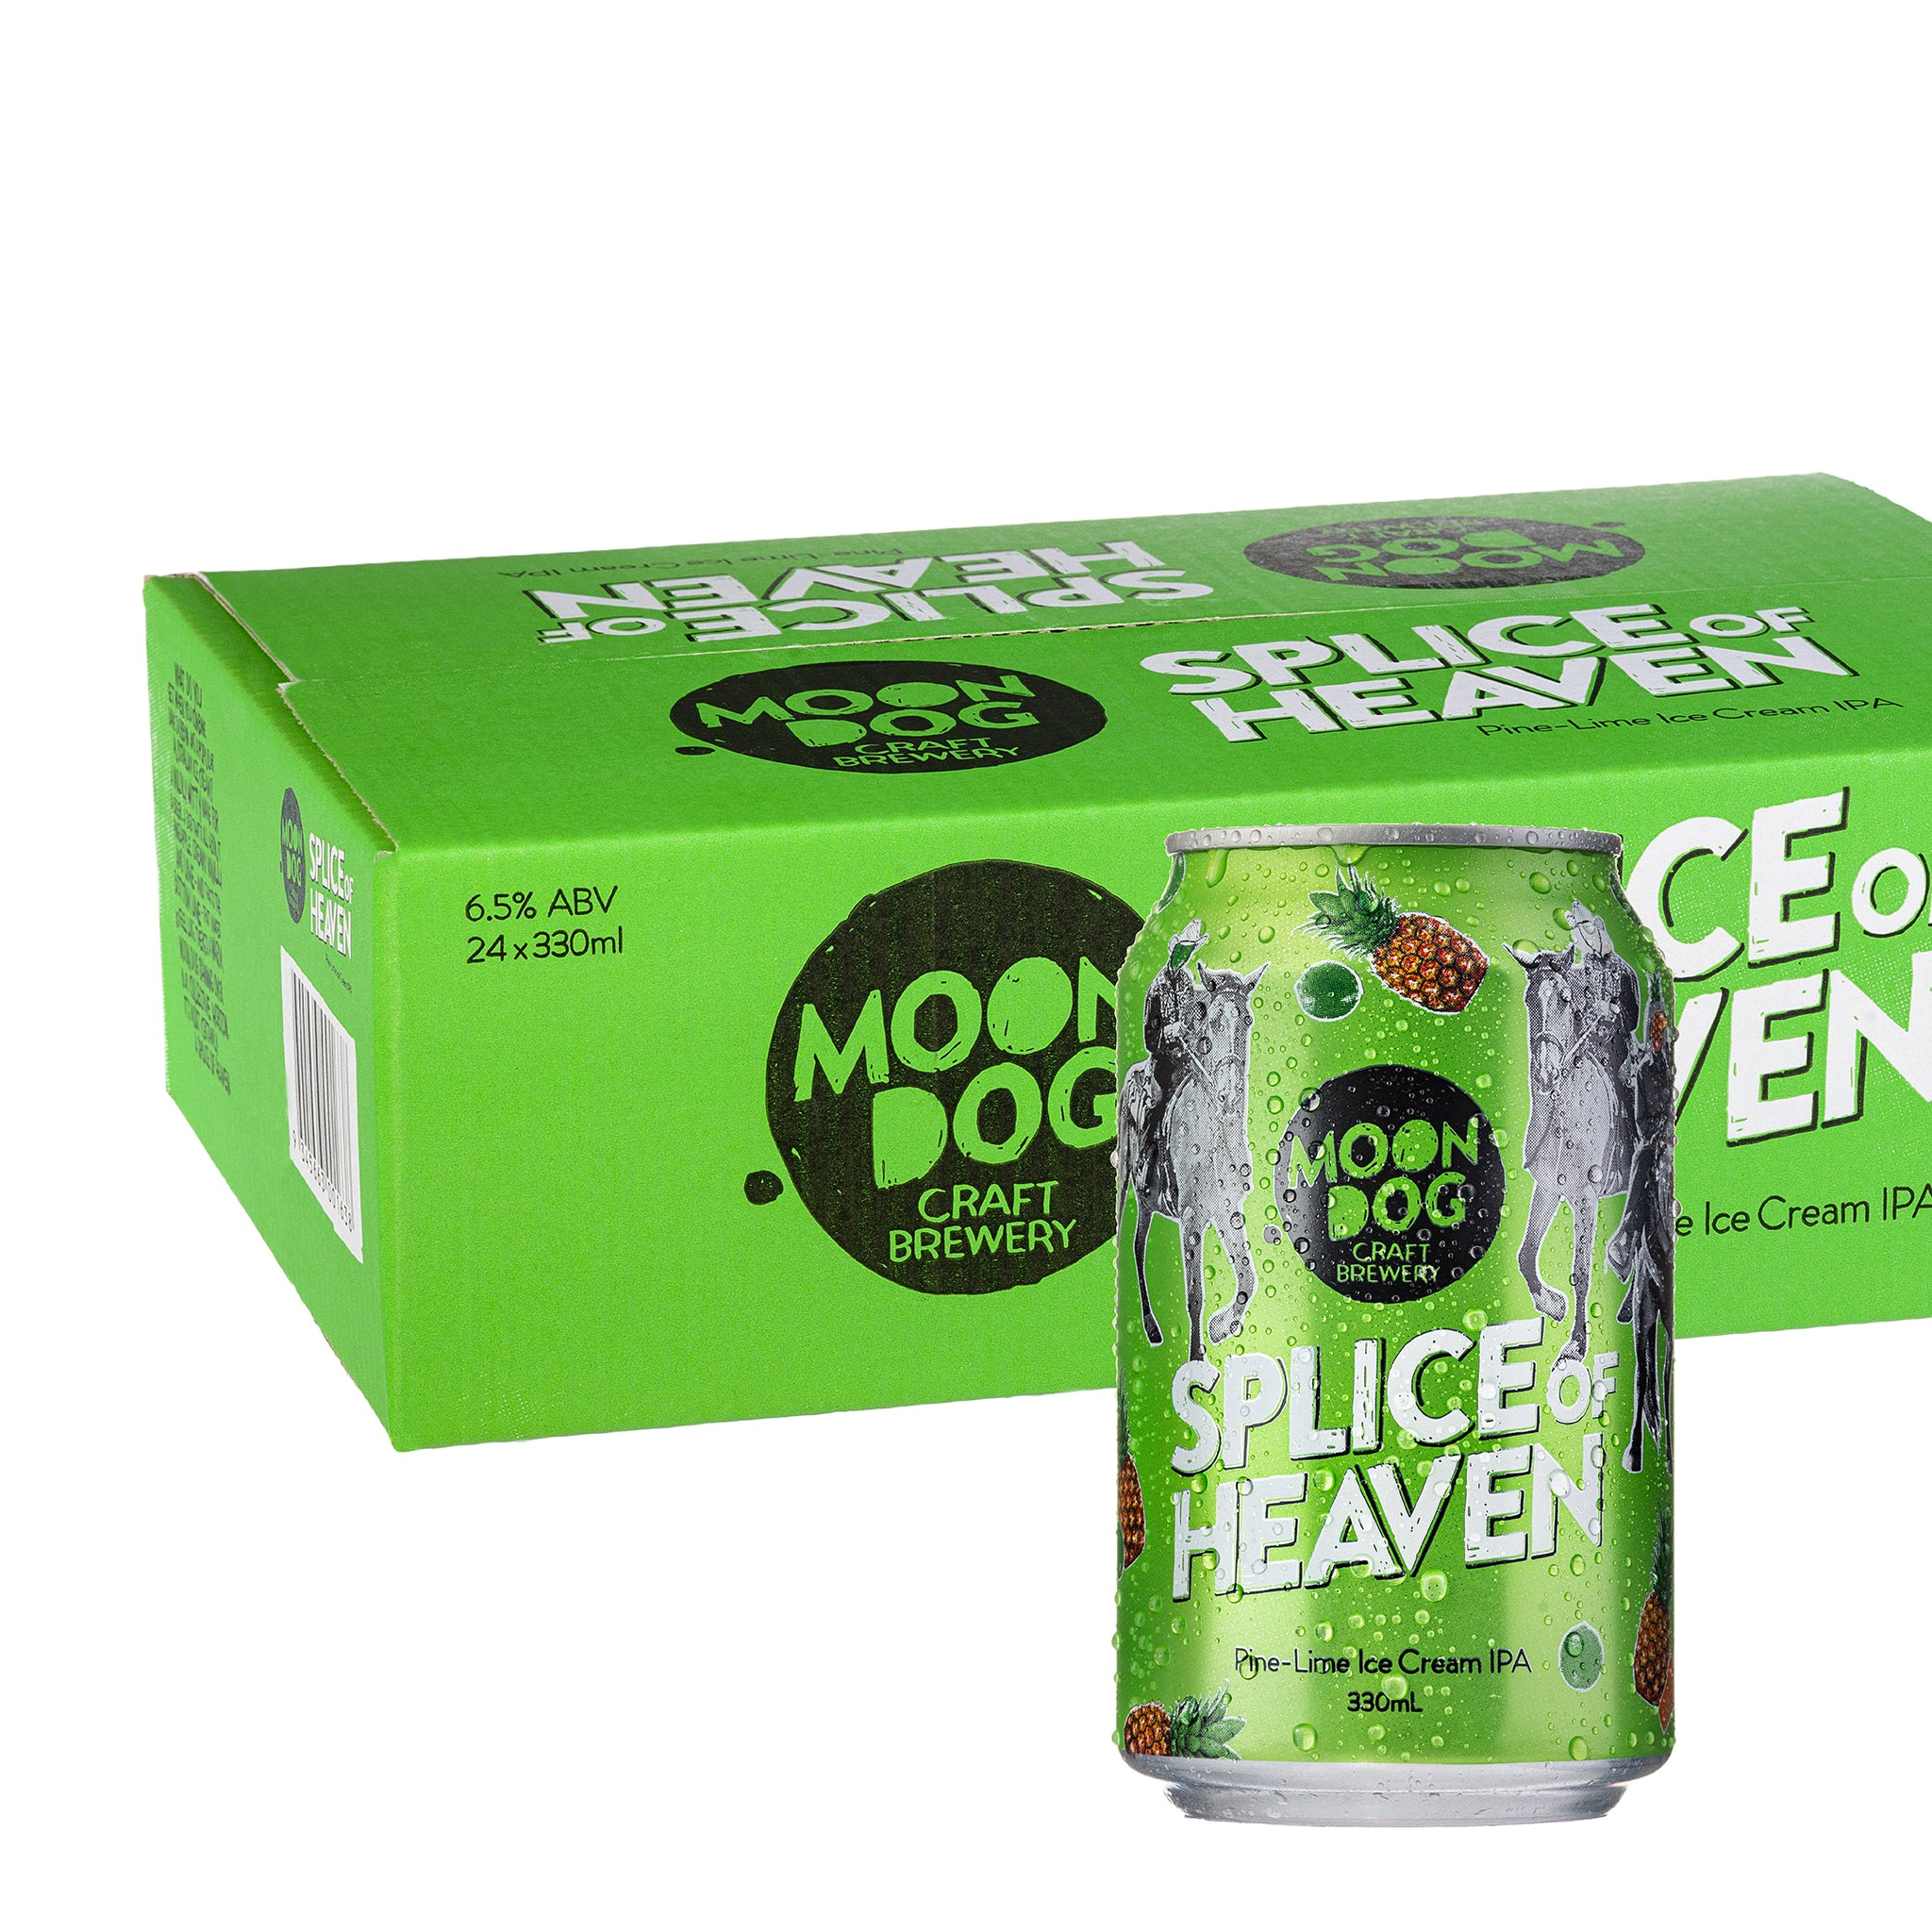 Splice of Heaven Pine-Lime Ice Cream IPA 330ml Cans - 4/24 Pack